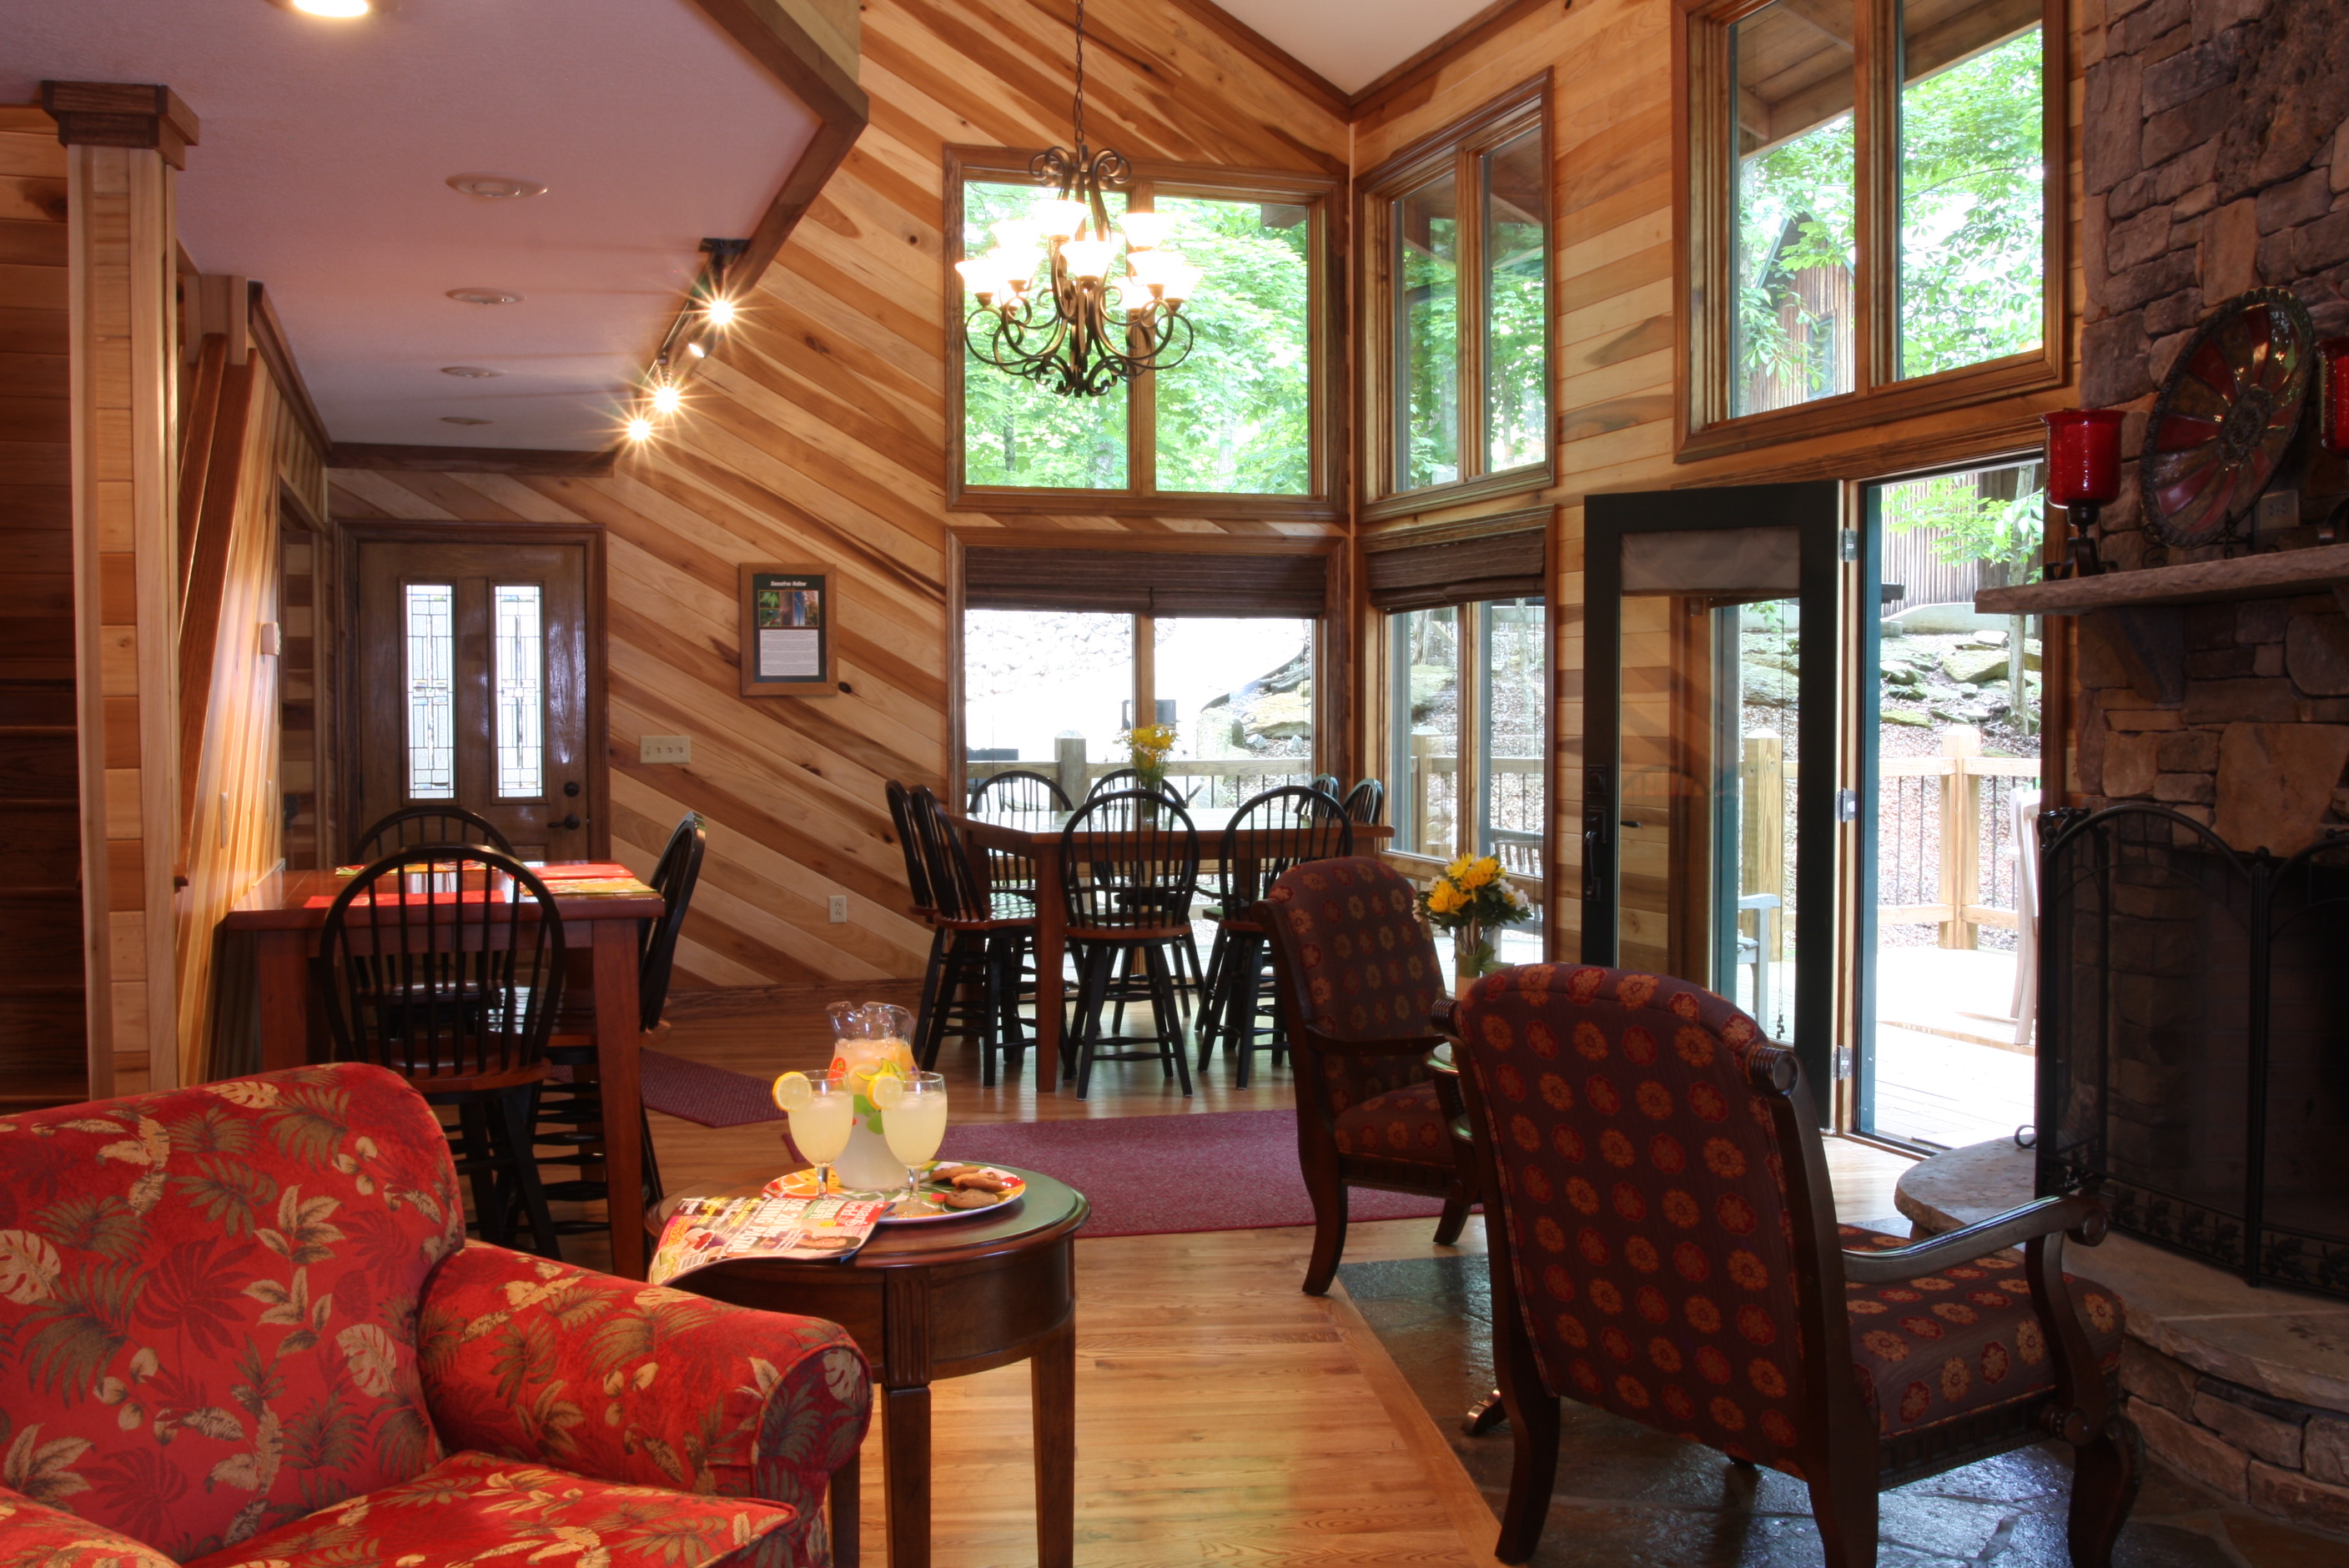 Sunset Marina on Dale Hollow Lake Announces Lakefront Vacation Cabin